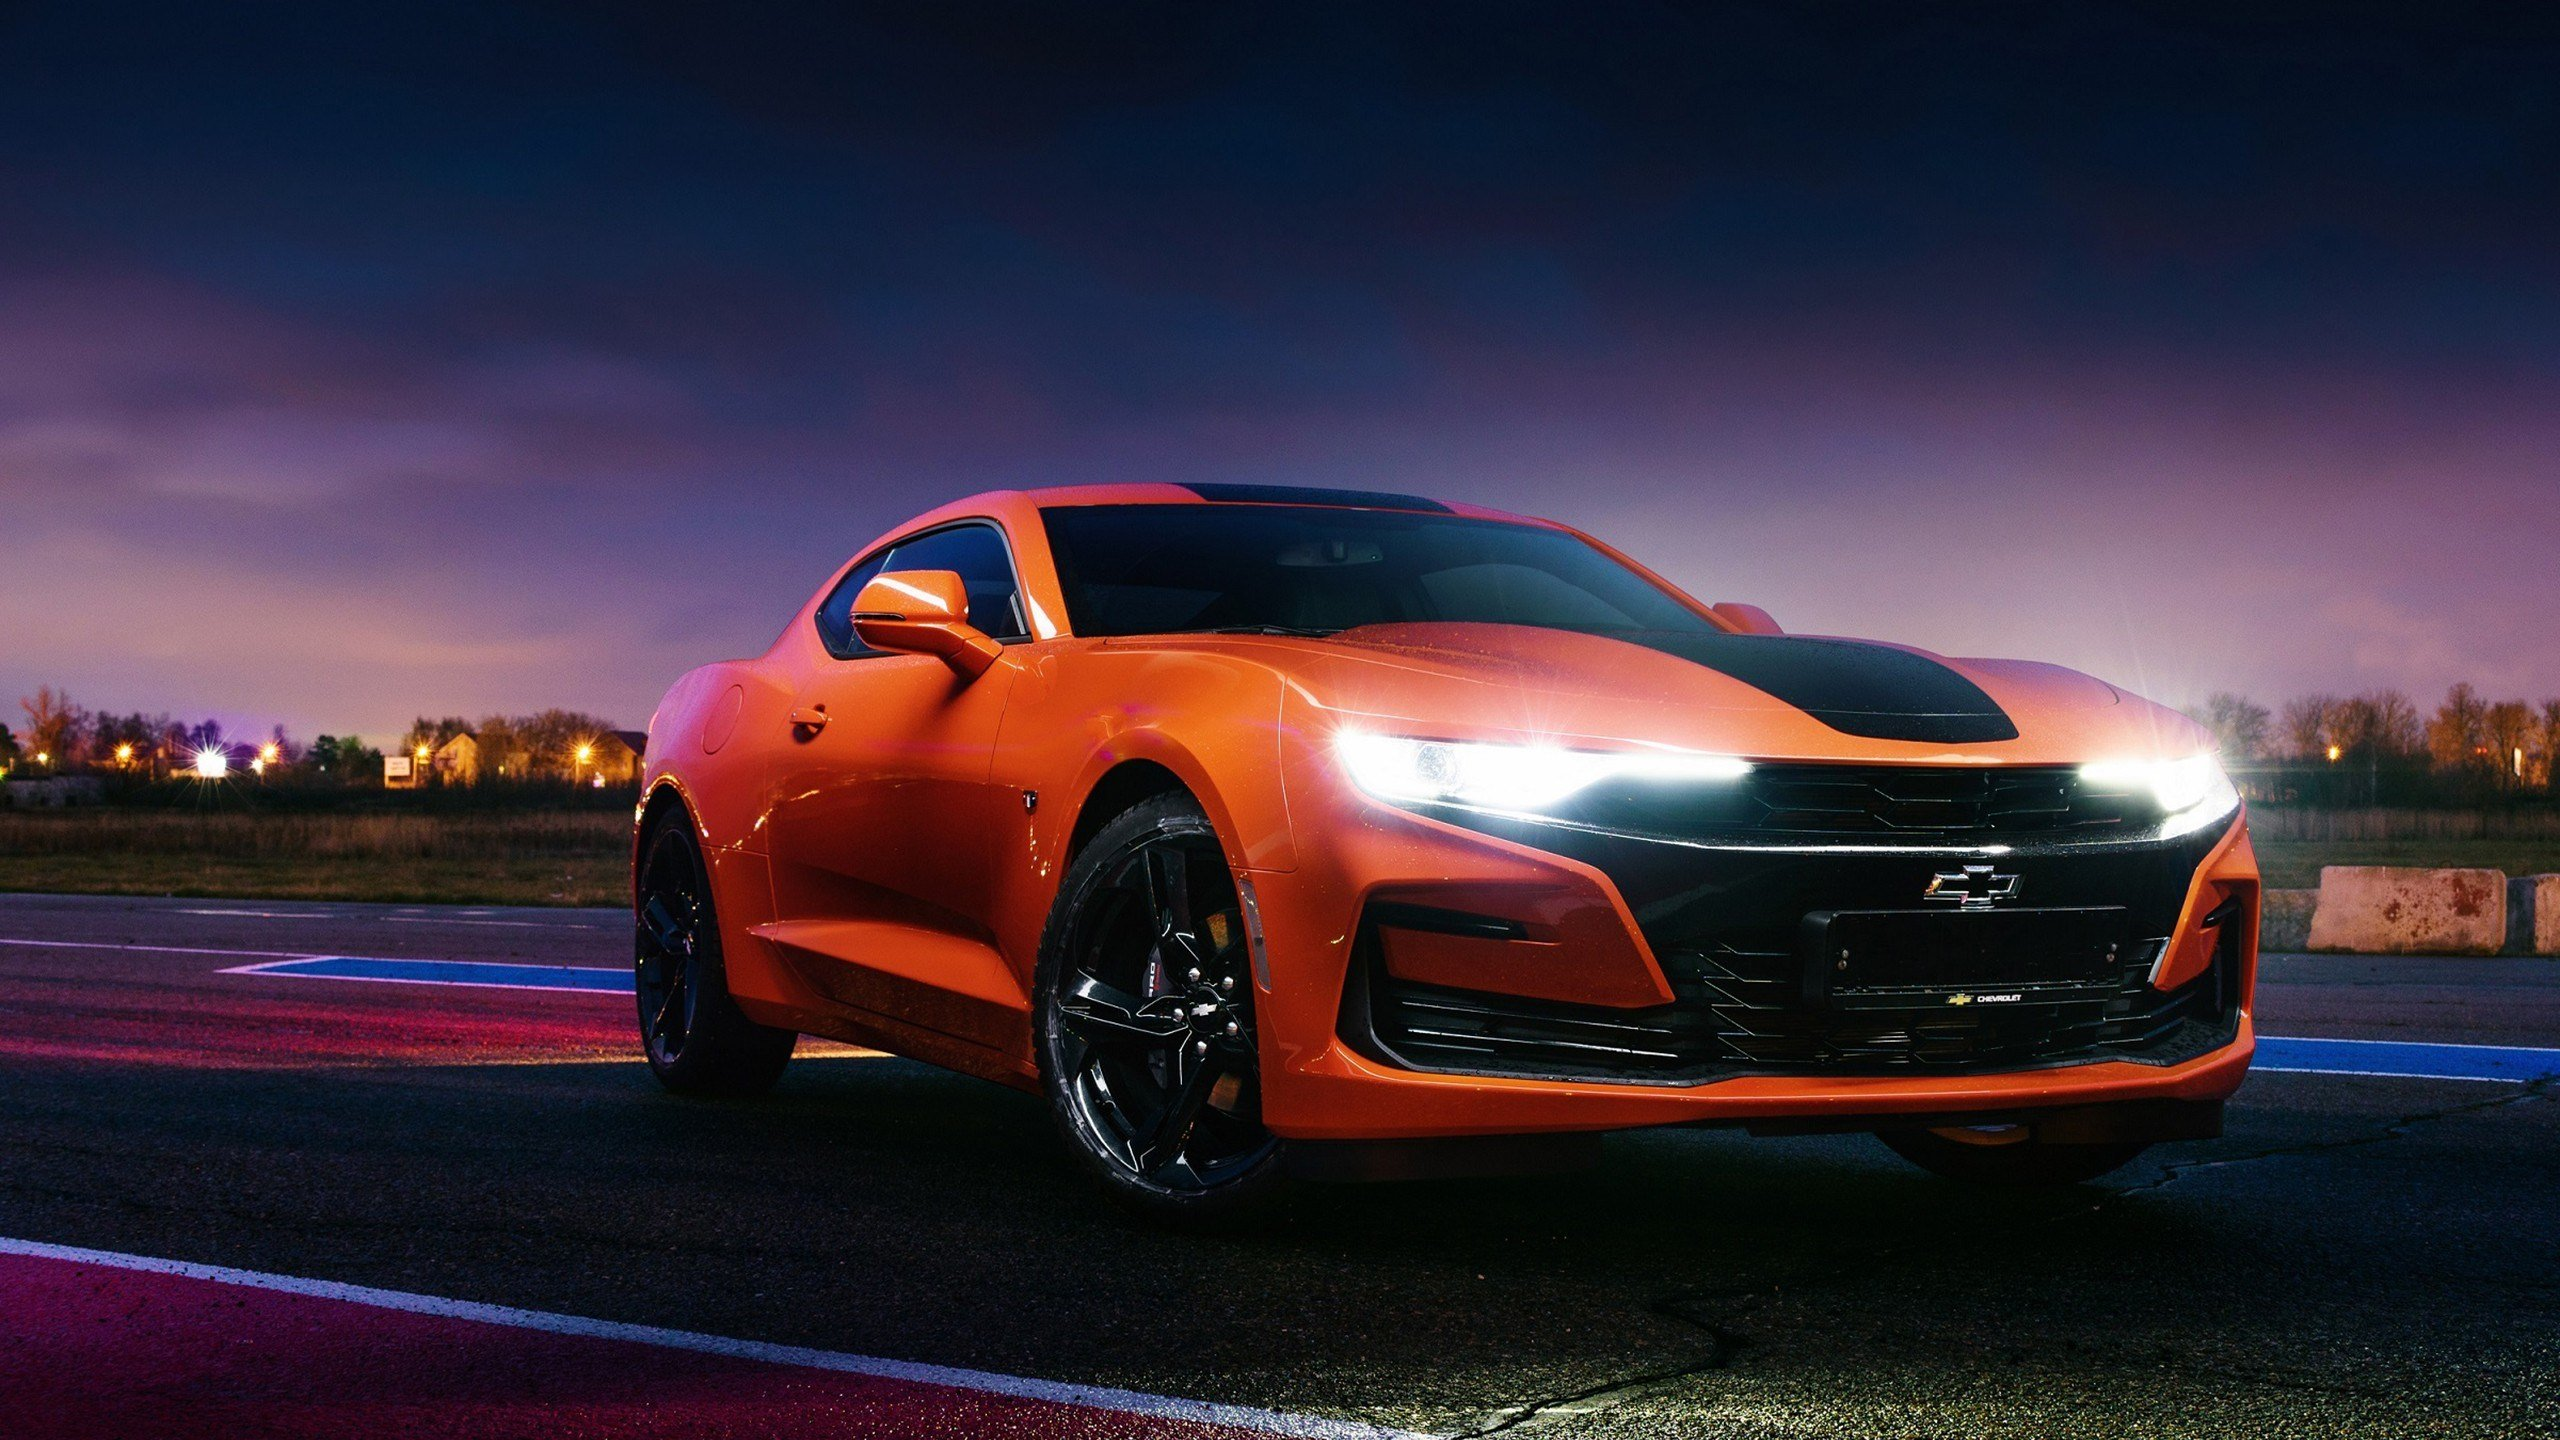 New Chevrolet Camaro 2019 Wallpaper Hd Car Wallpapers Id On This Month